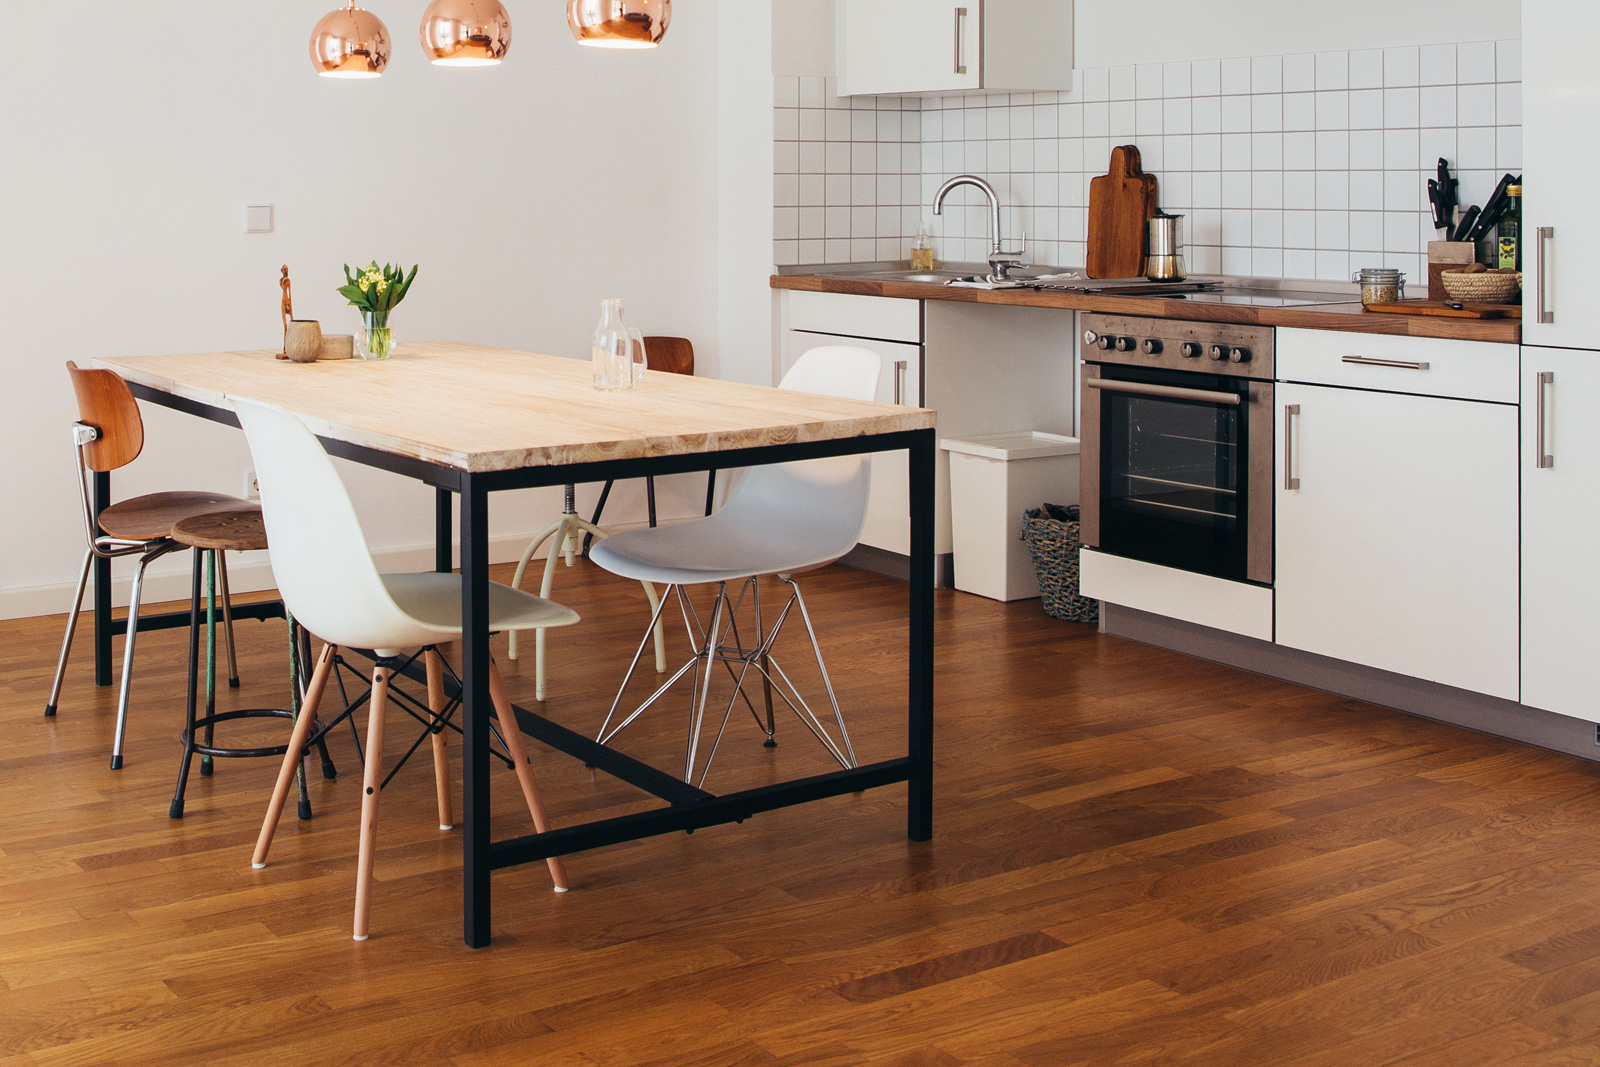 awesome wood floor in kitchen pictures - best image engine